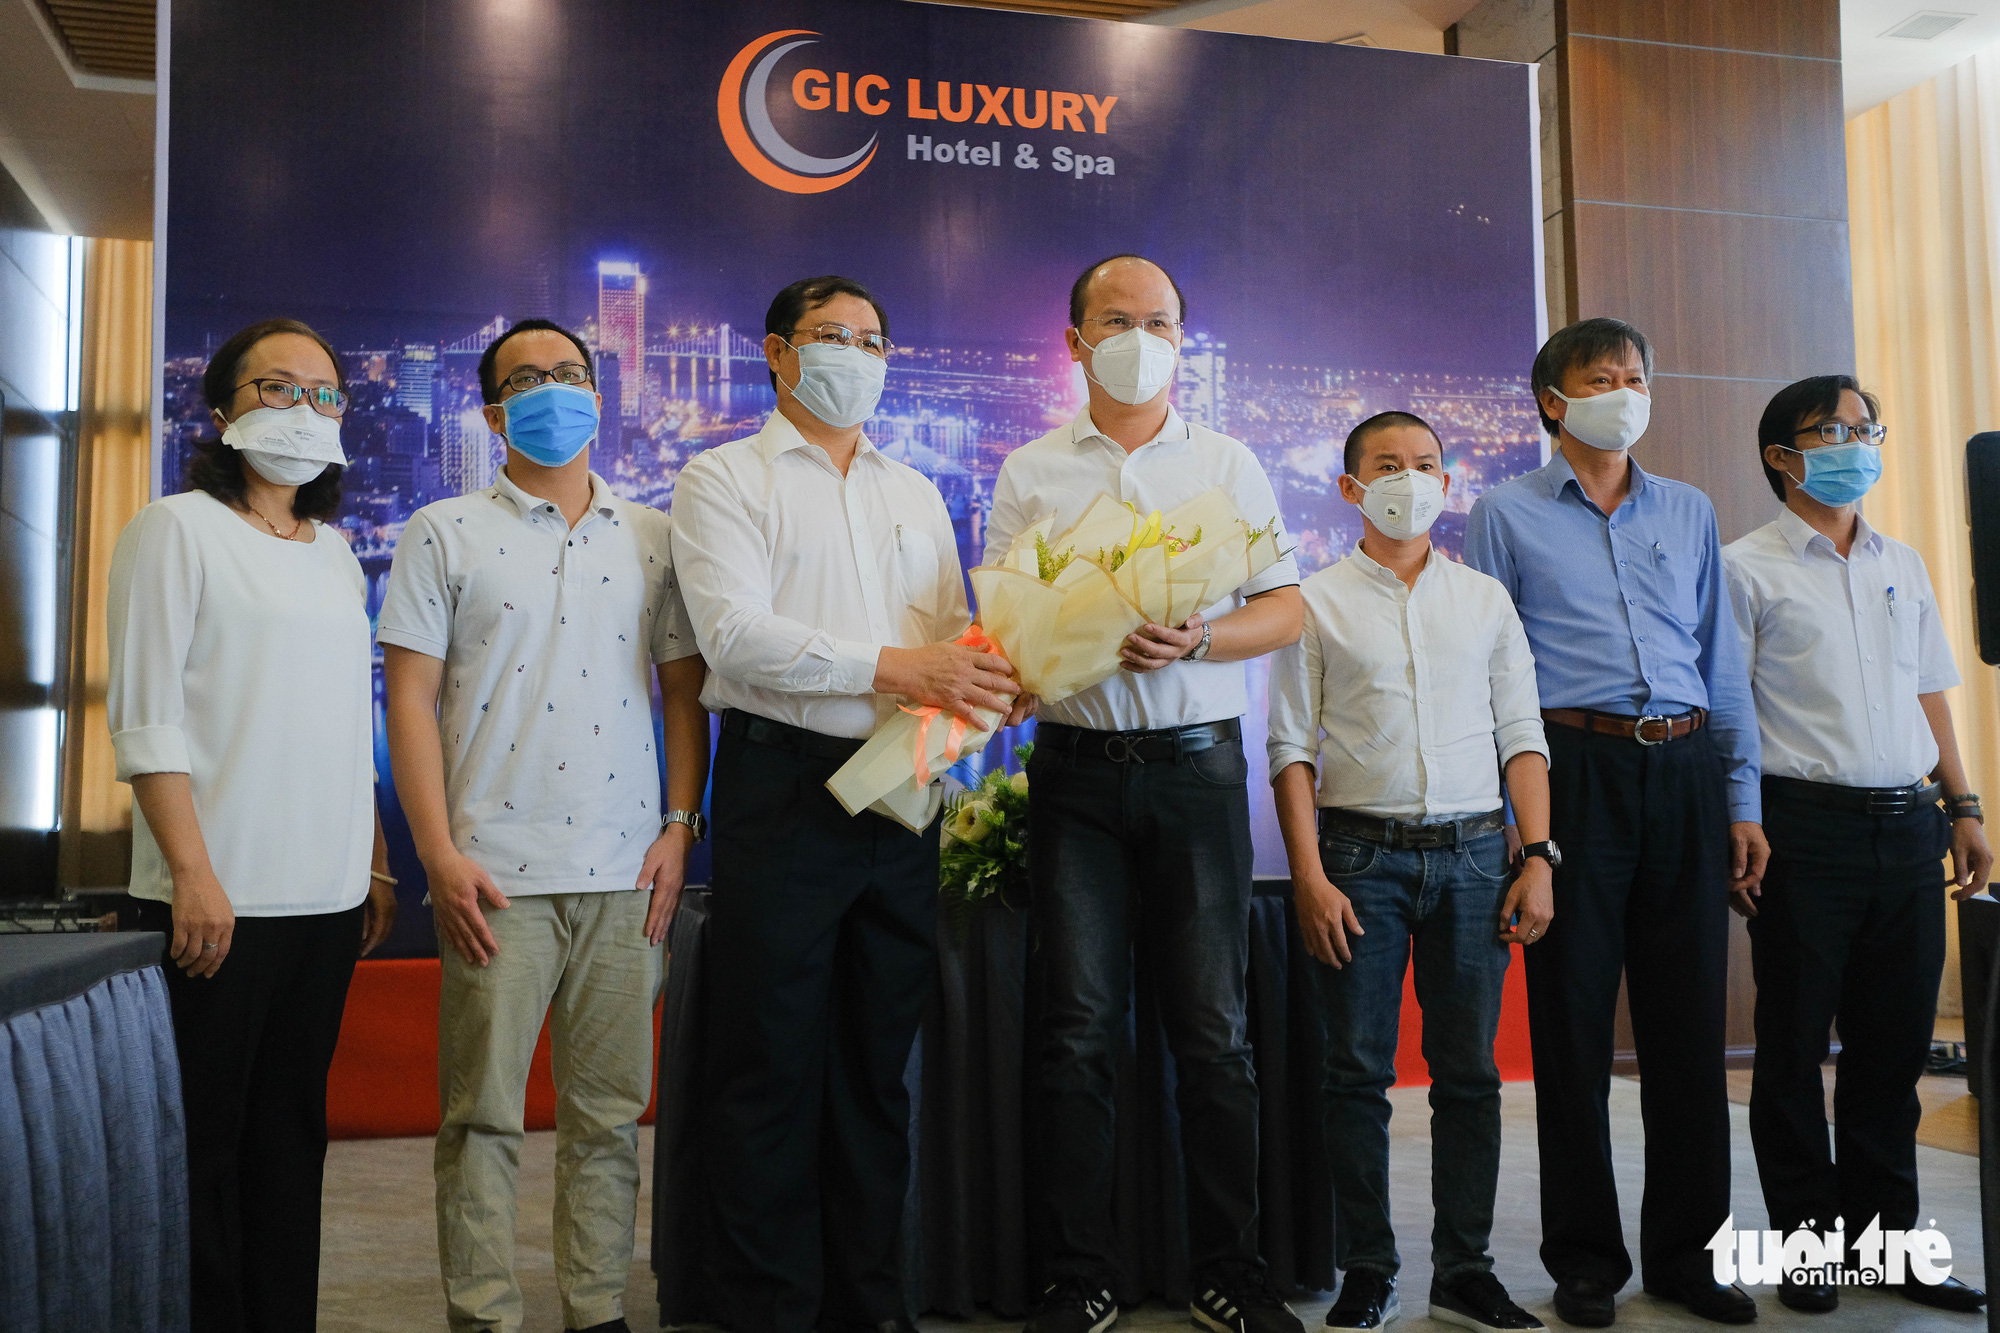 Da Nang City chairman Huynh Duc Tho (third left) give a bouquet of flowers to a medical team who assisted the city during the COVID-19 outbreak before sending them home at a farewell ceremony in Da Nang, September 12, 2020. Photo: Tan Luc / Tuoi Tre